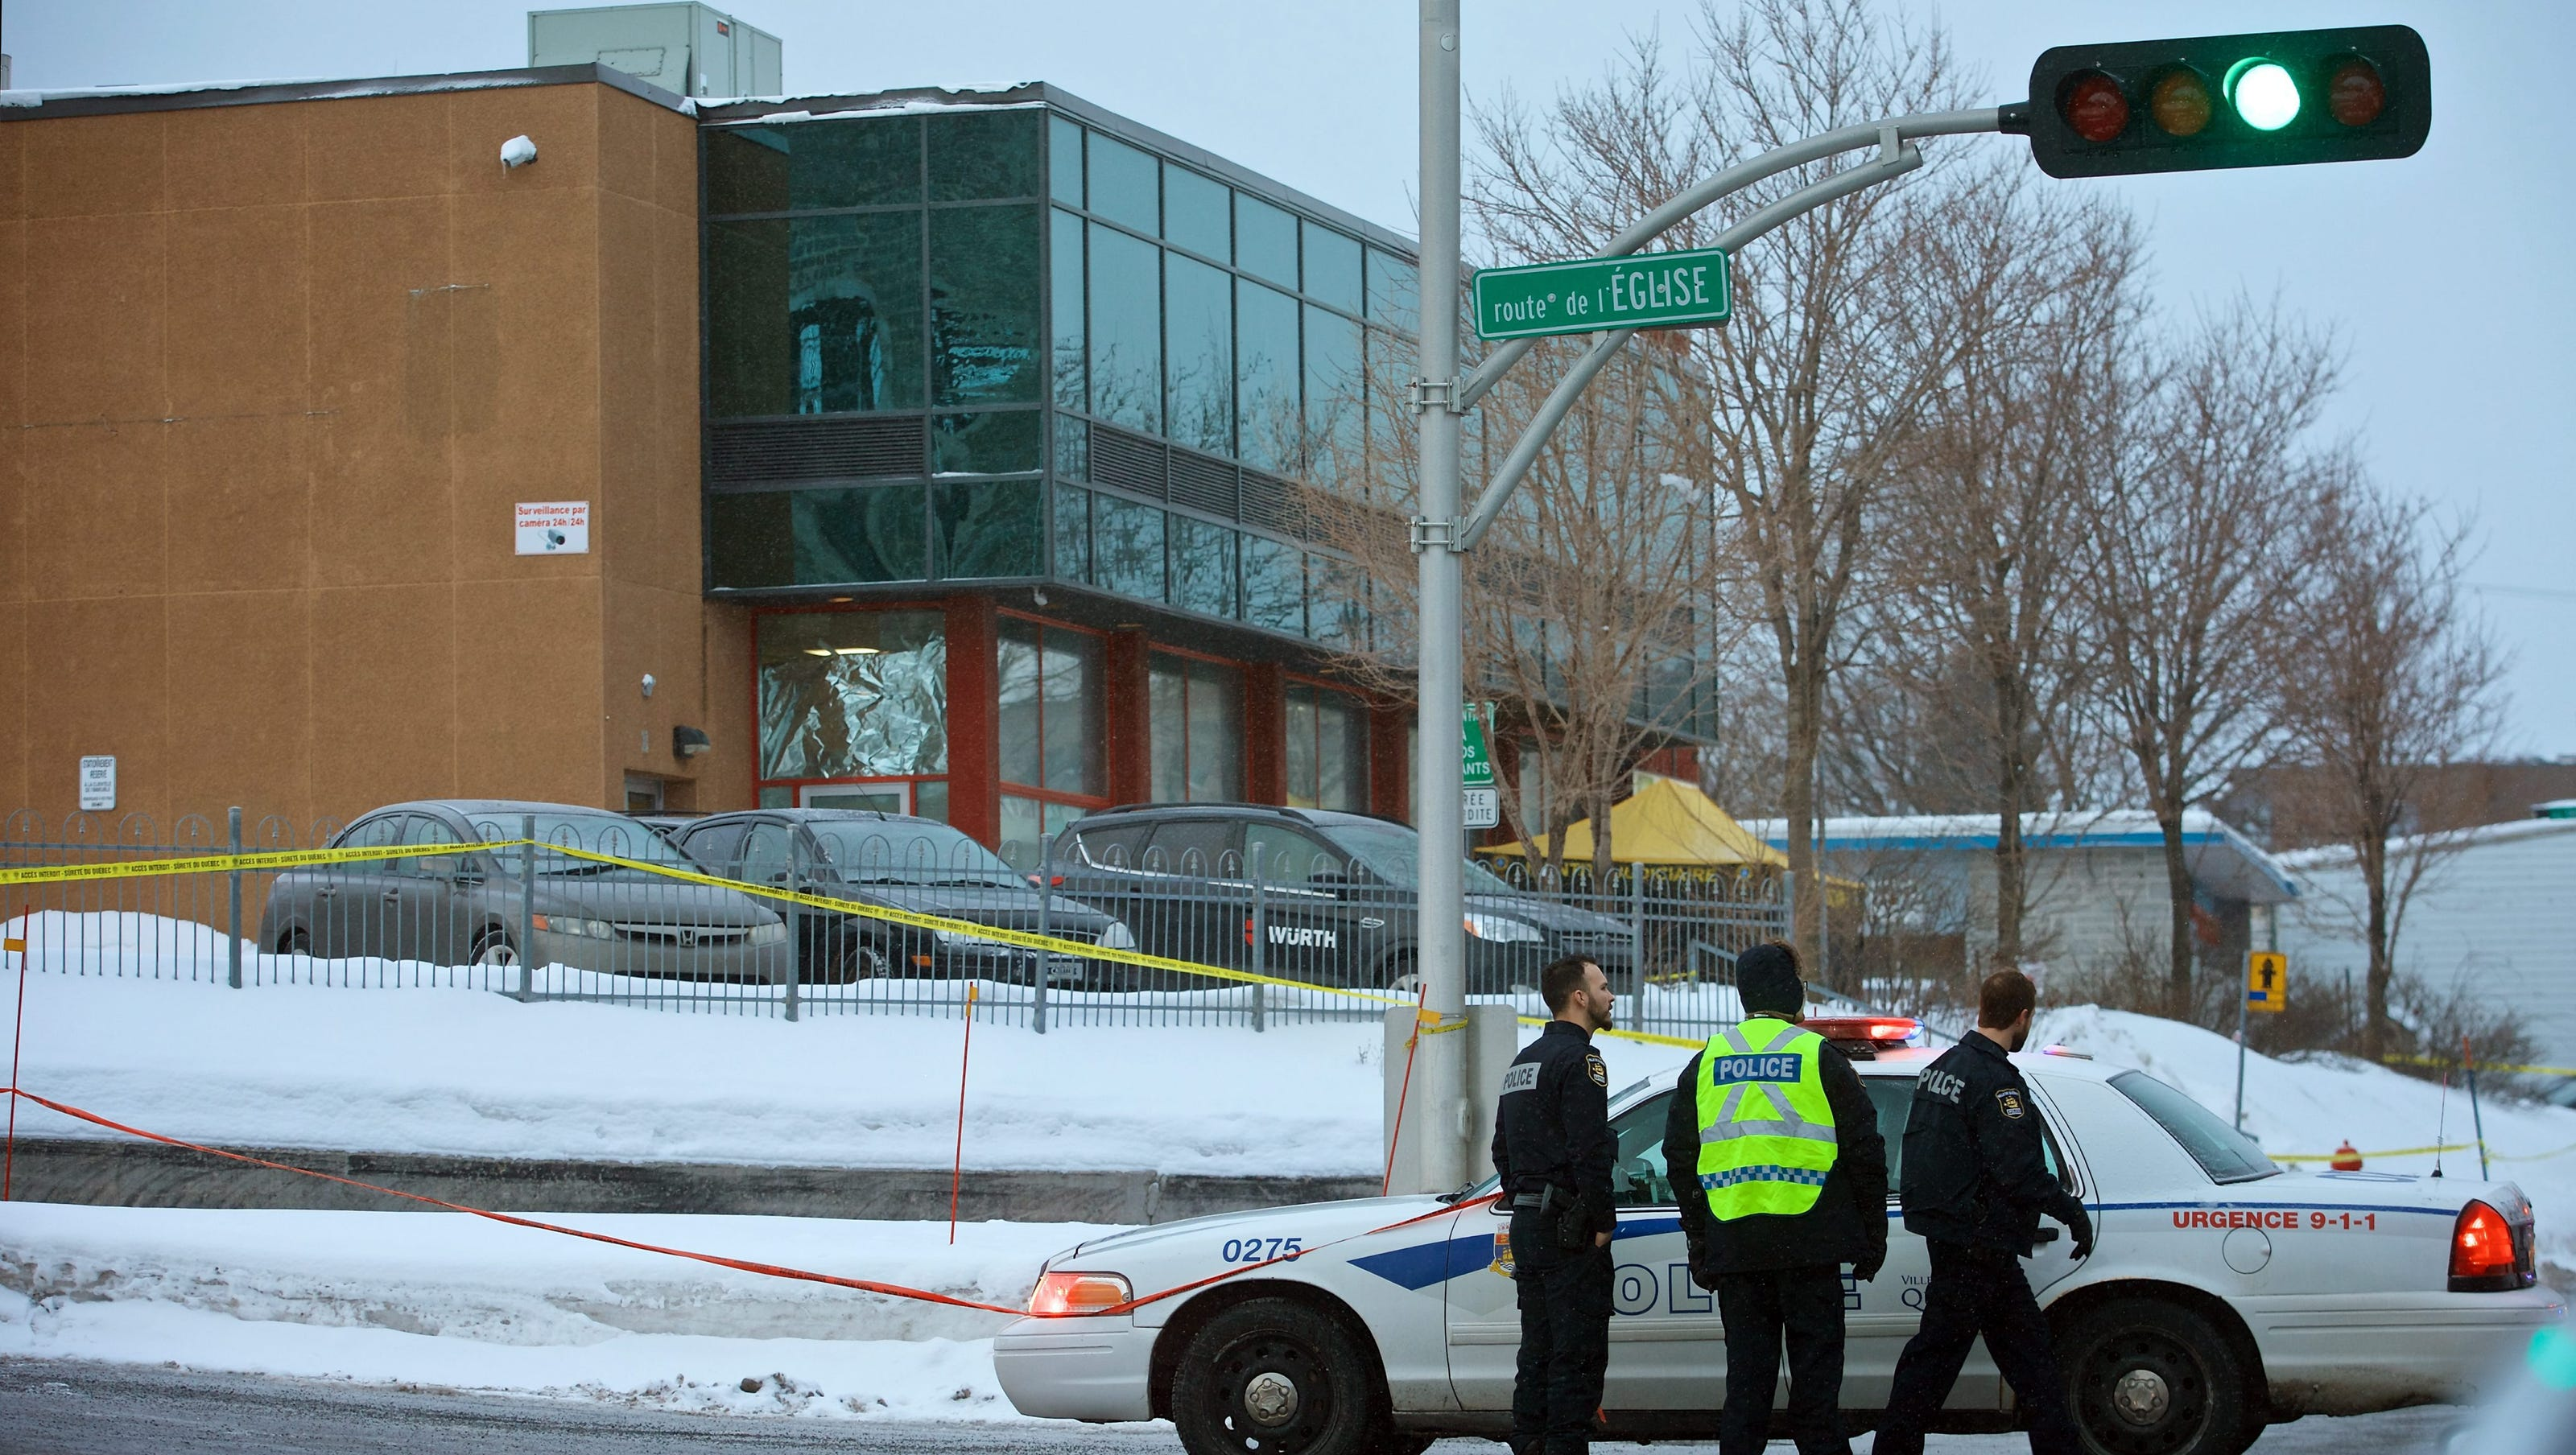 Mosque Shooting Image: Alleged Anti-immigrant Suspect Charged In Quebec Mosque